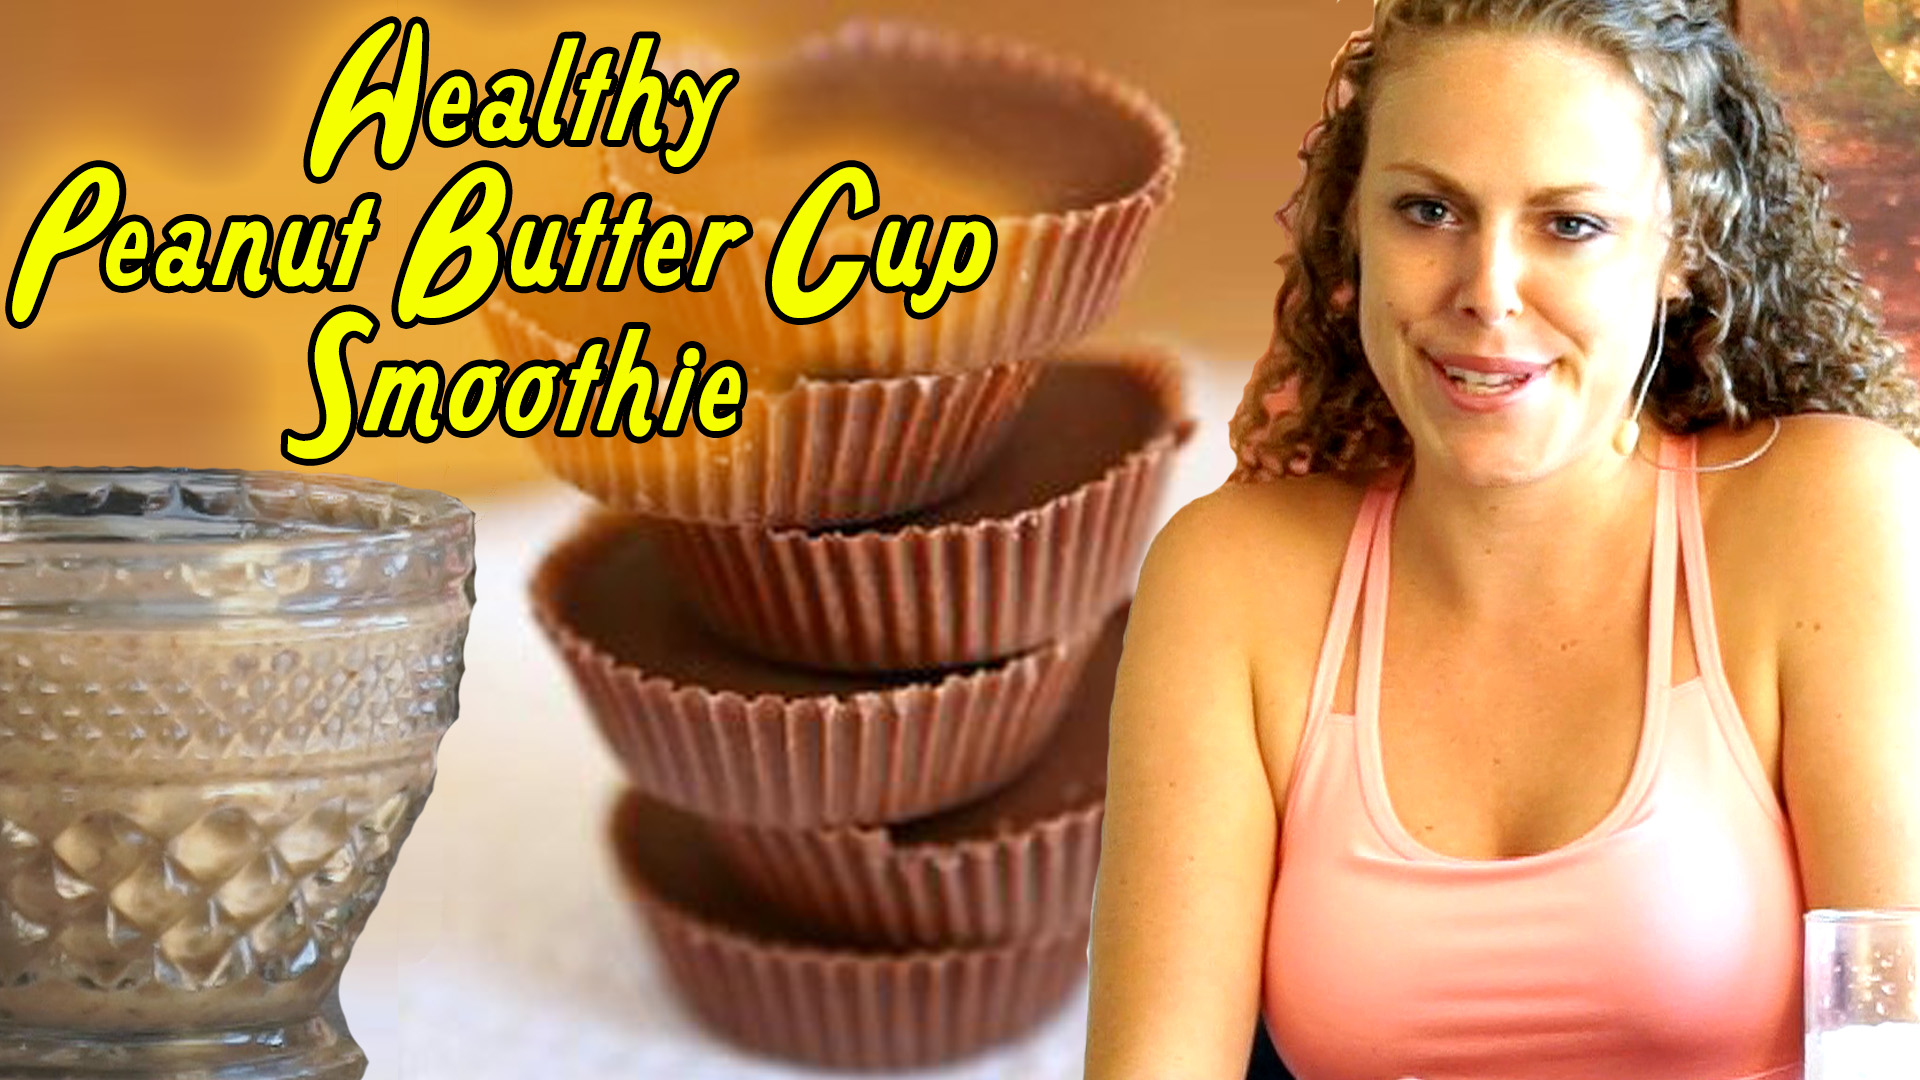 Healthy Breakfast Smoothie: Chocolate Peanut Butter Cup!